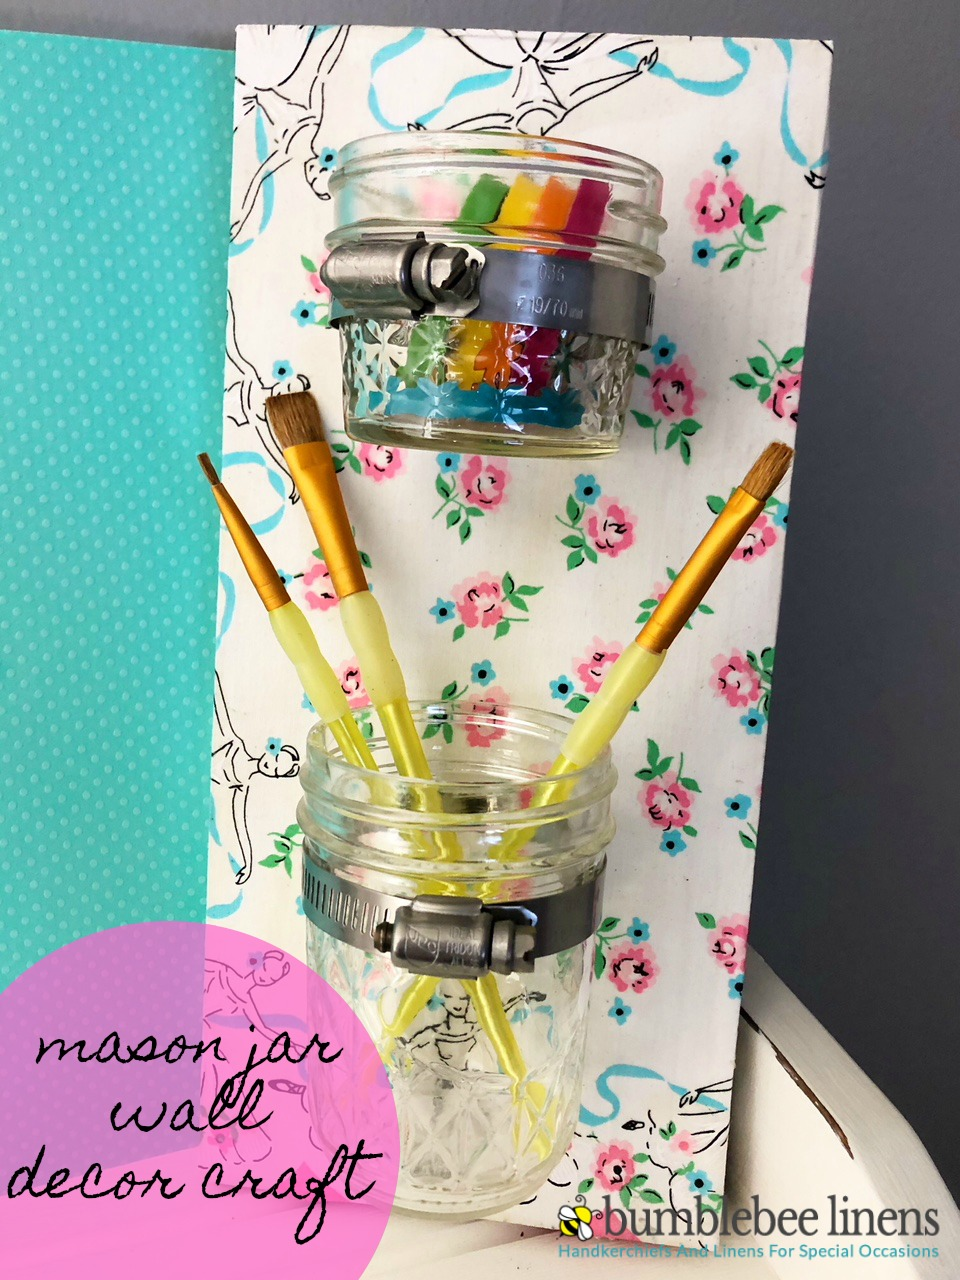 Our Mason Jar Wall Decor Craft is a perfect decor addition to any craft room or bedroom, completely customizable to your liking.